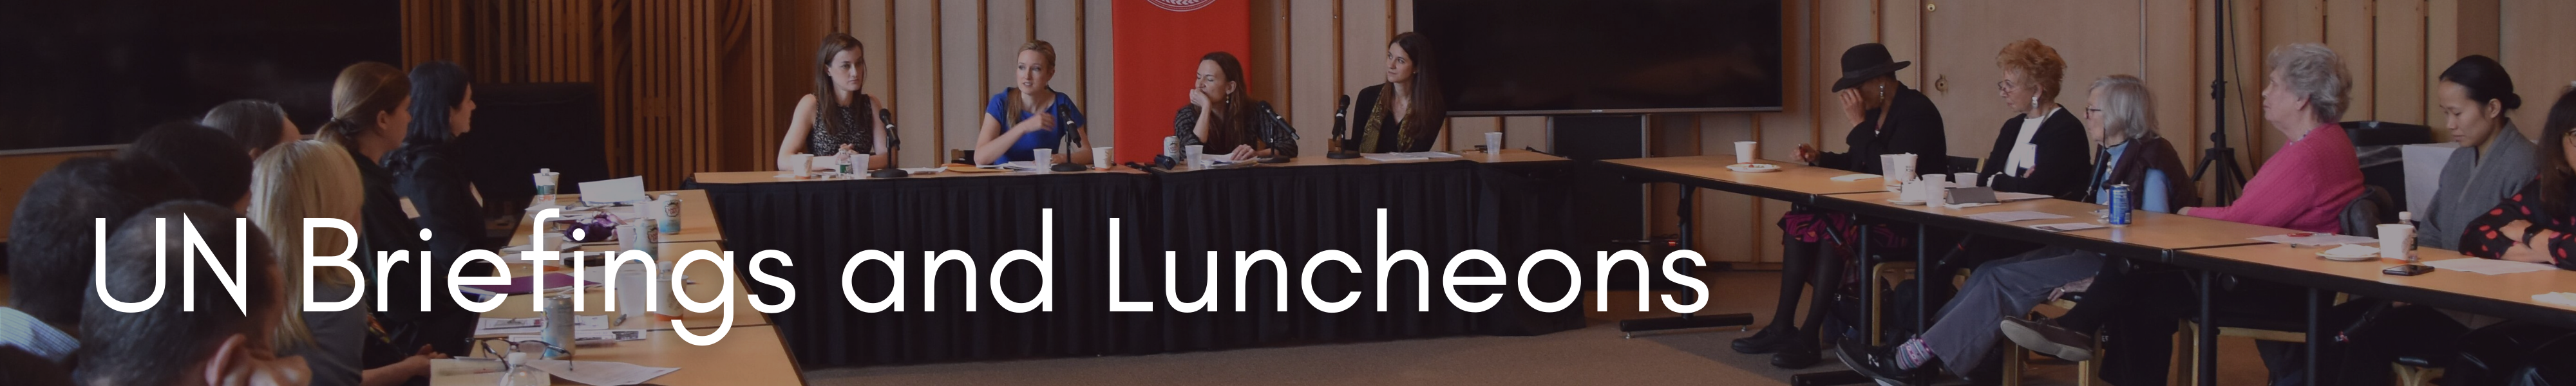 UN Briefings and Luncheons Banner